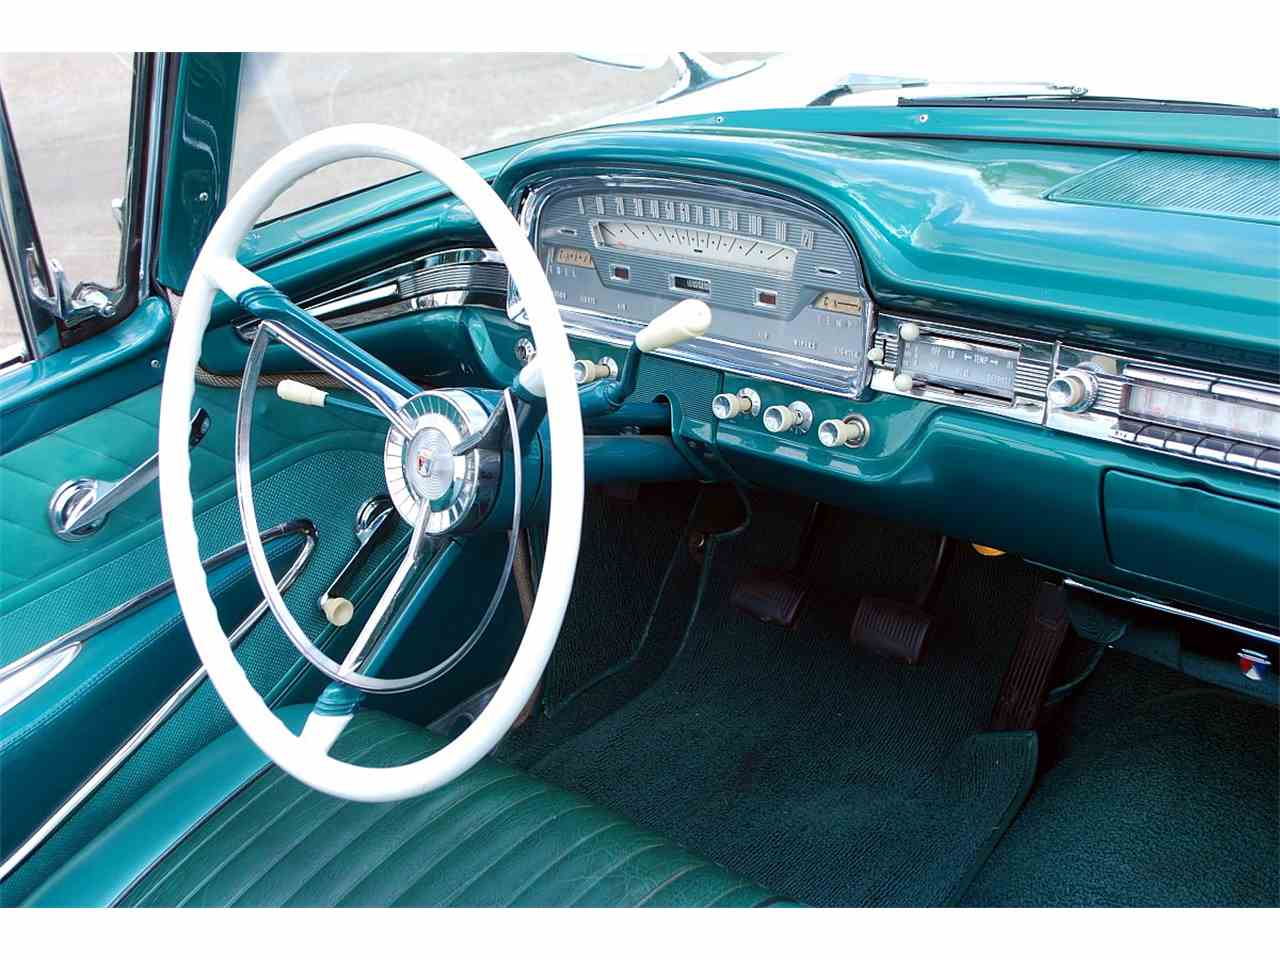 Large Picture of 1959 Ford Galaxie - $39,999.00 - LBGZ